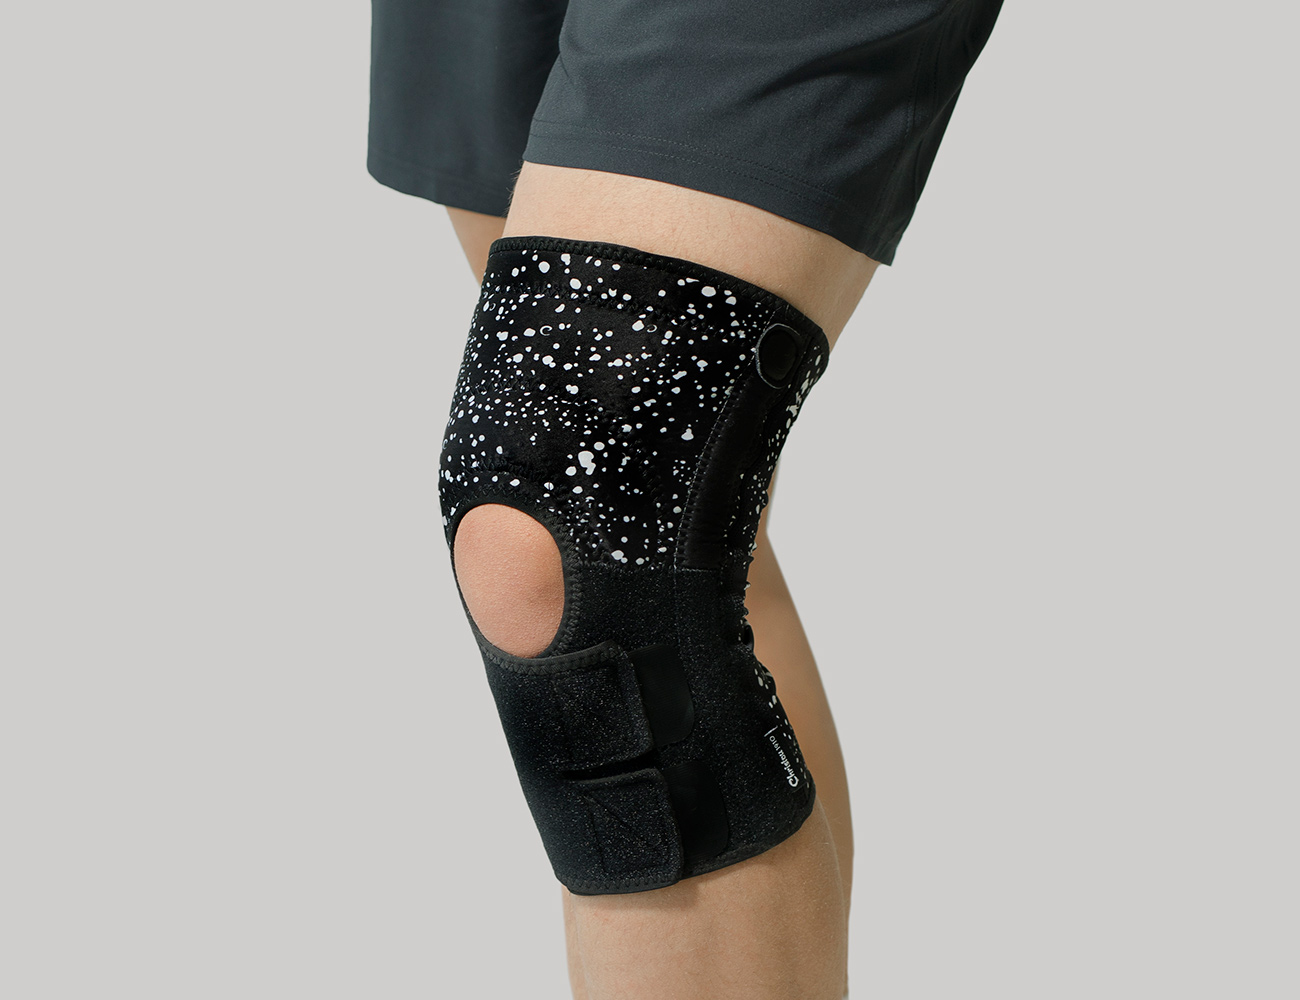 Top Knee Support With Silicone Patella Pad & Flexible Side Stays